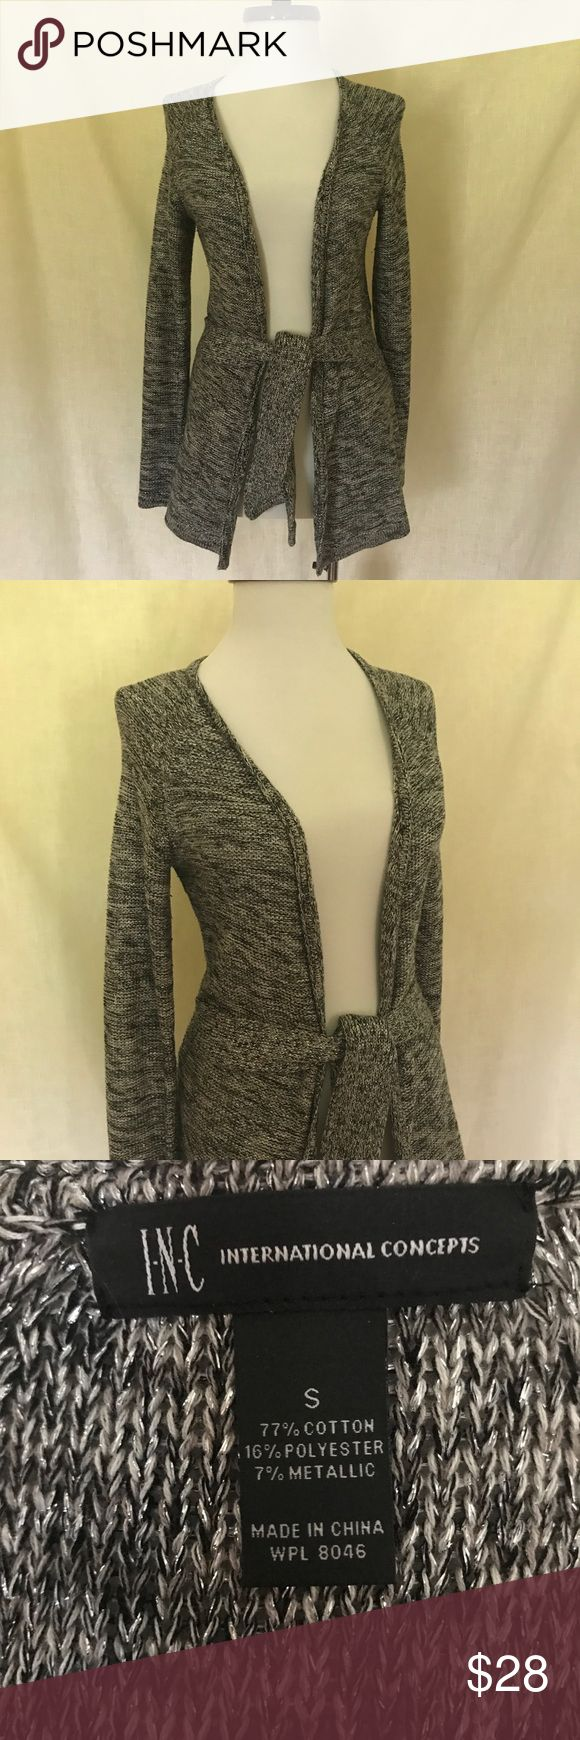 INC international Concepts Metallic Cardigan Wrap Worn maybe one time!  Great piece!  Metallic material throughout. Ties.   Sz Small Retail $69  I bundle, just ask! INC International Concepts Sweaters Cardigans